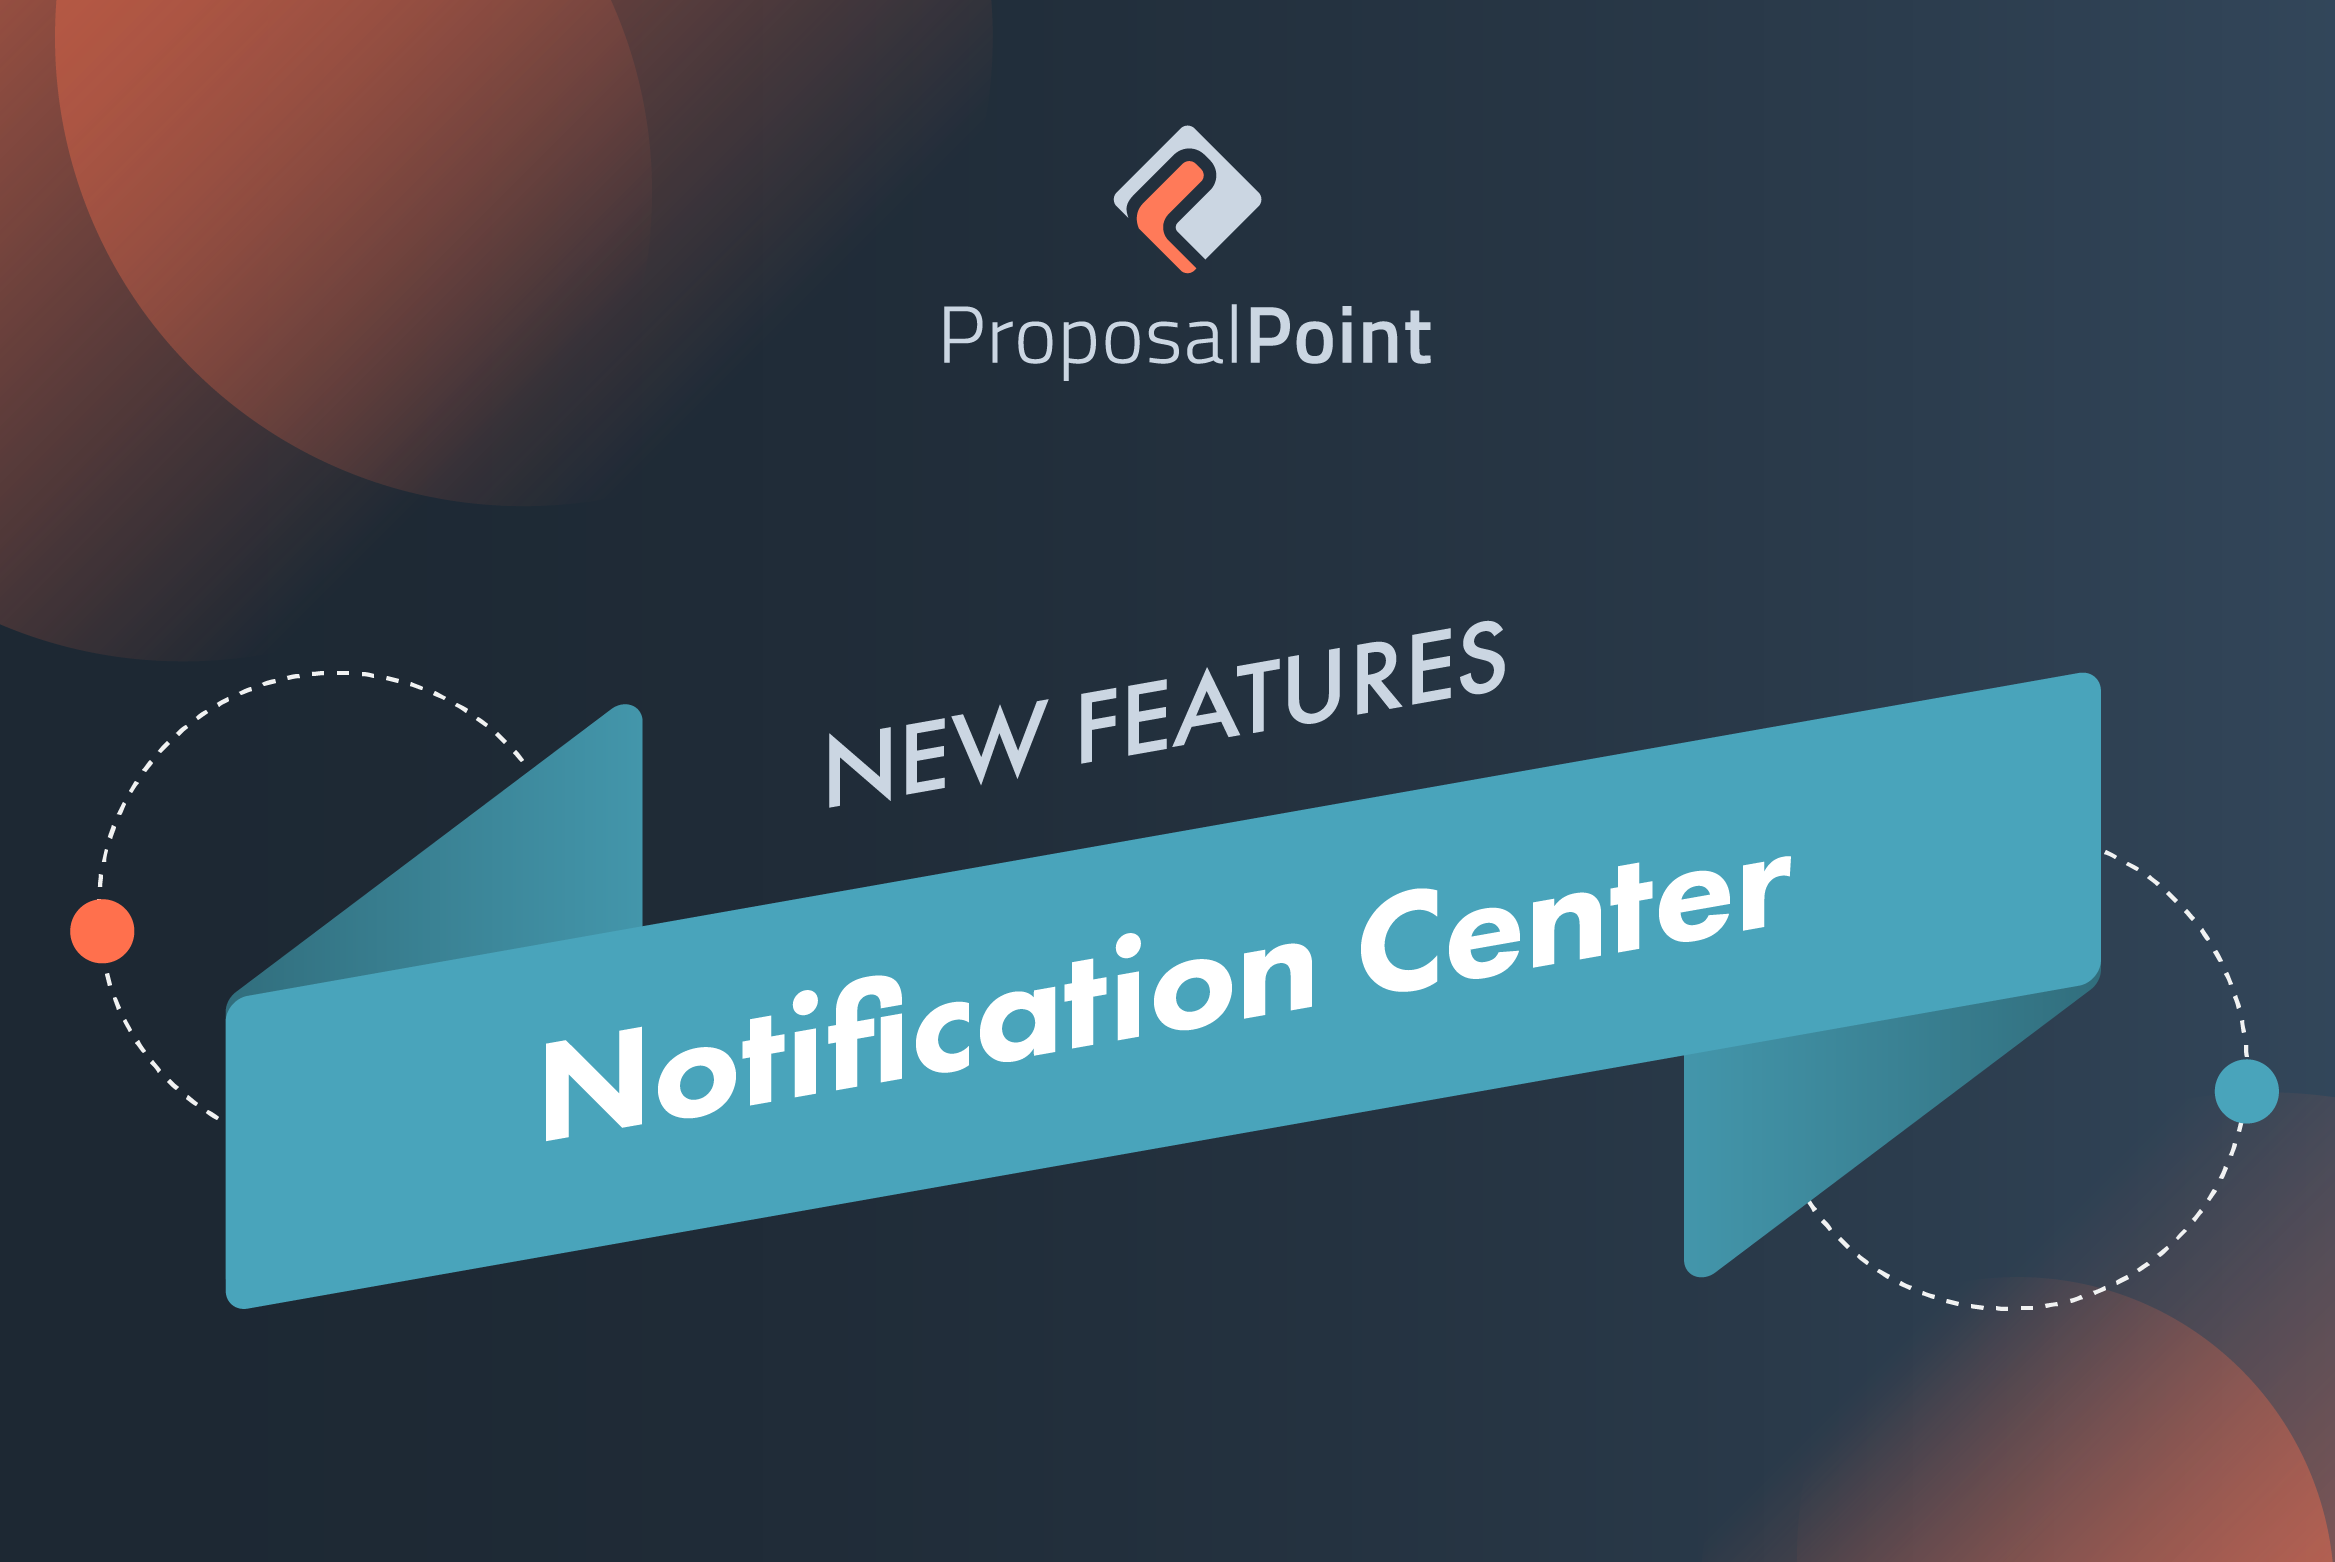 New Feature: Notification Center